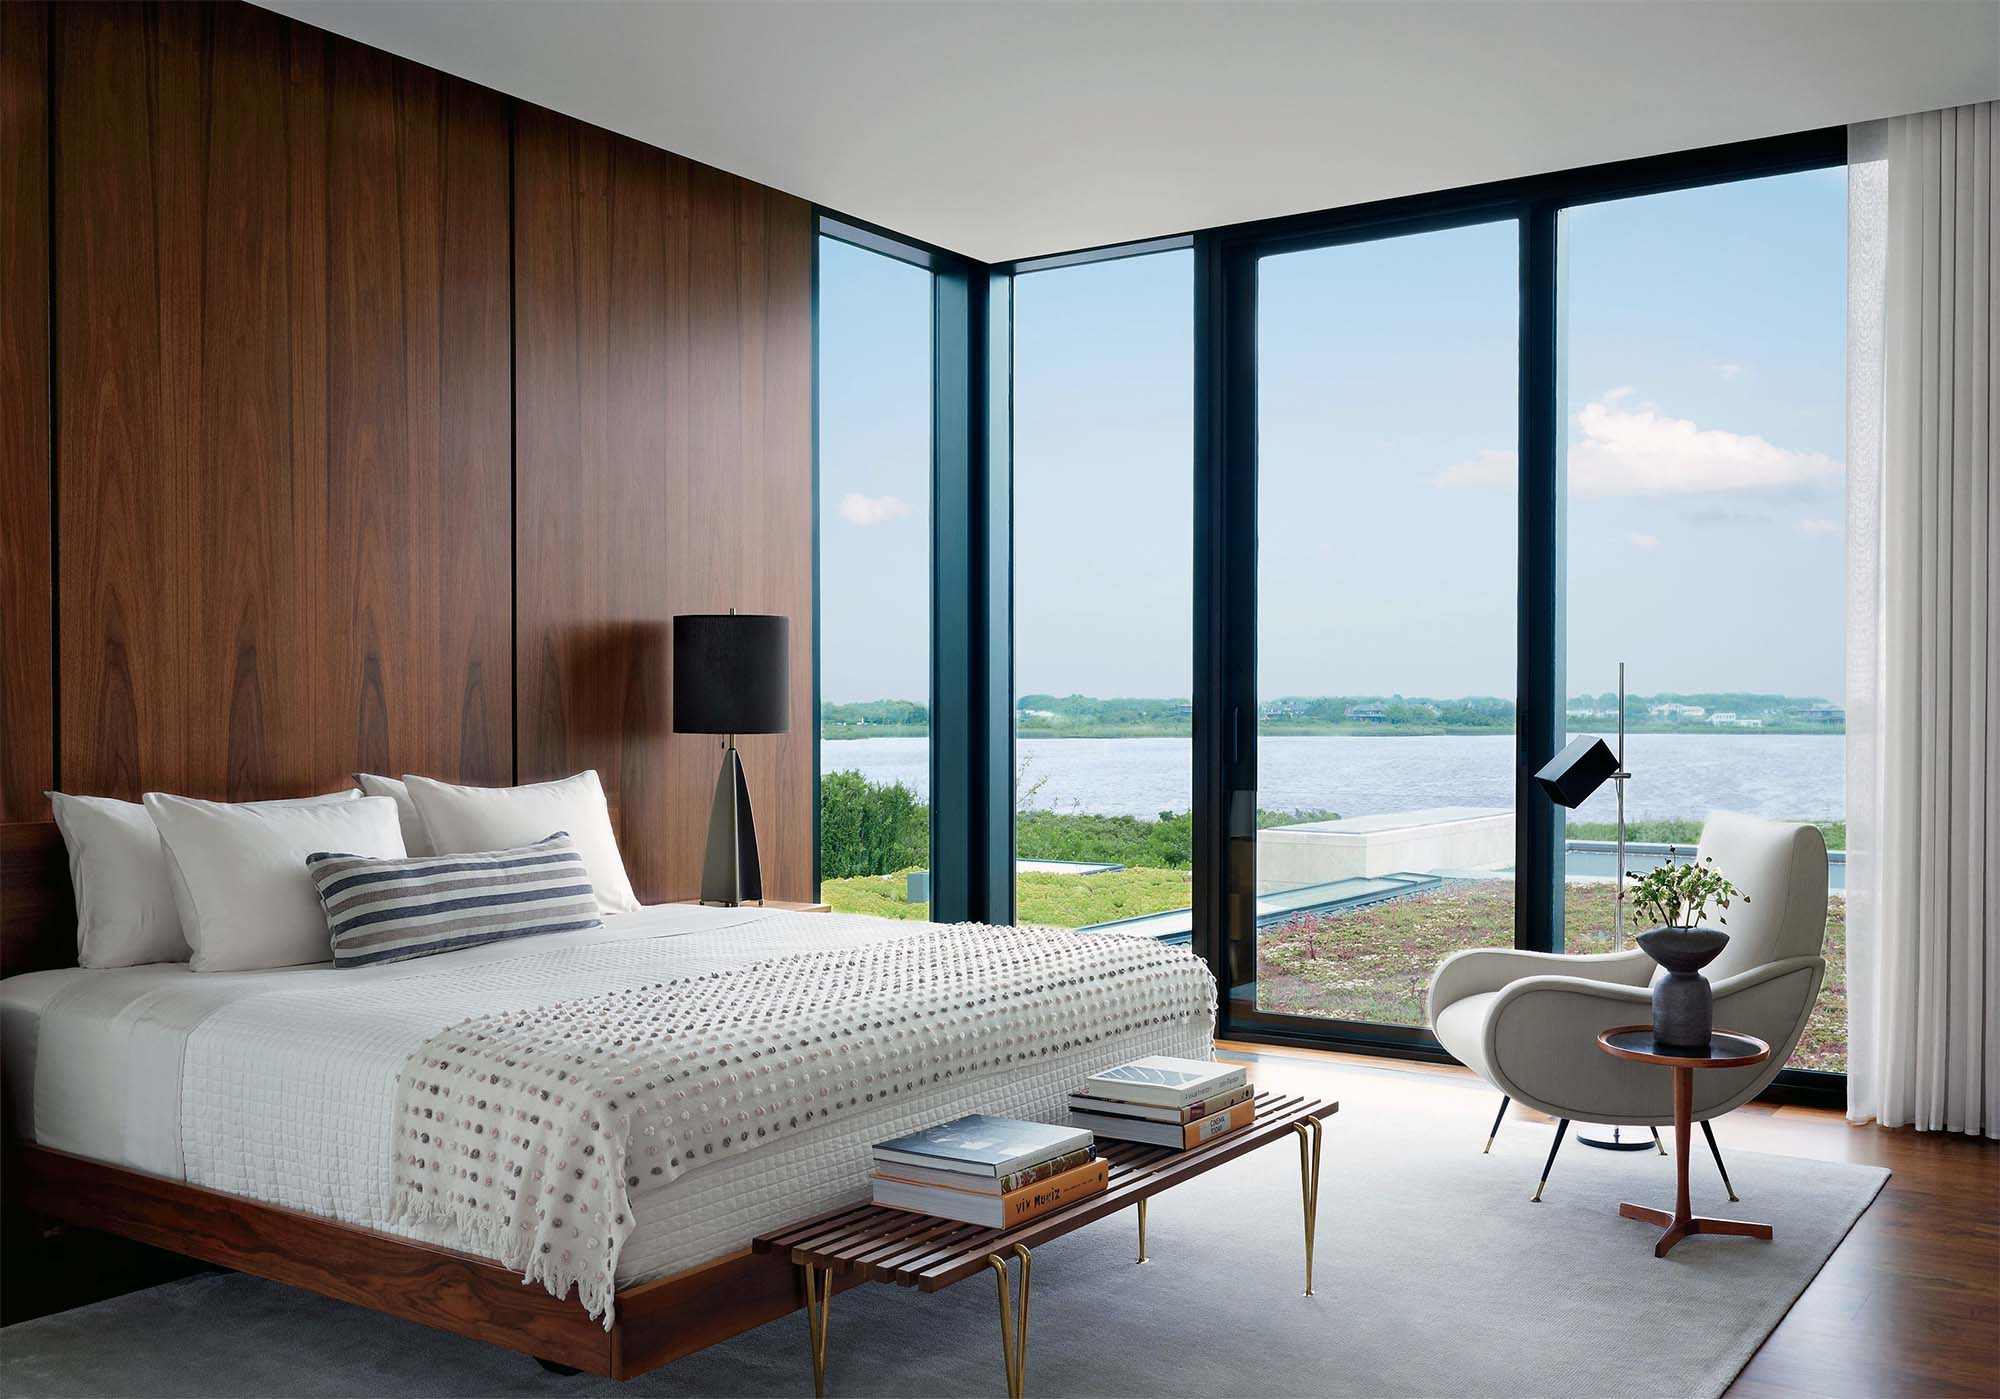 Modern vertical wood wall paneling with a matching wood floating bed frame.